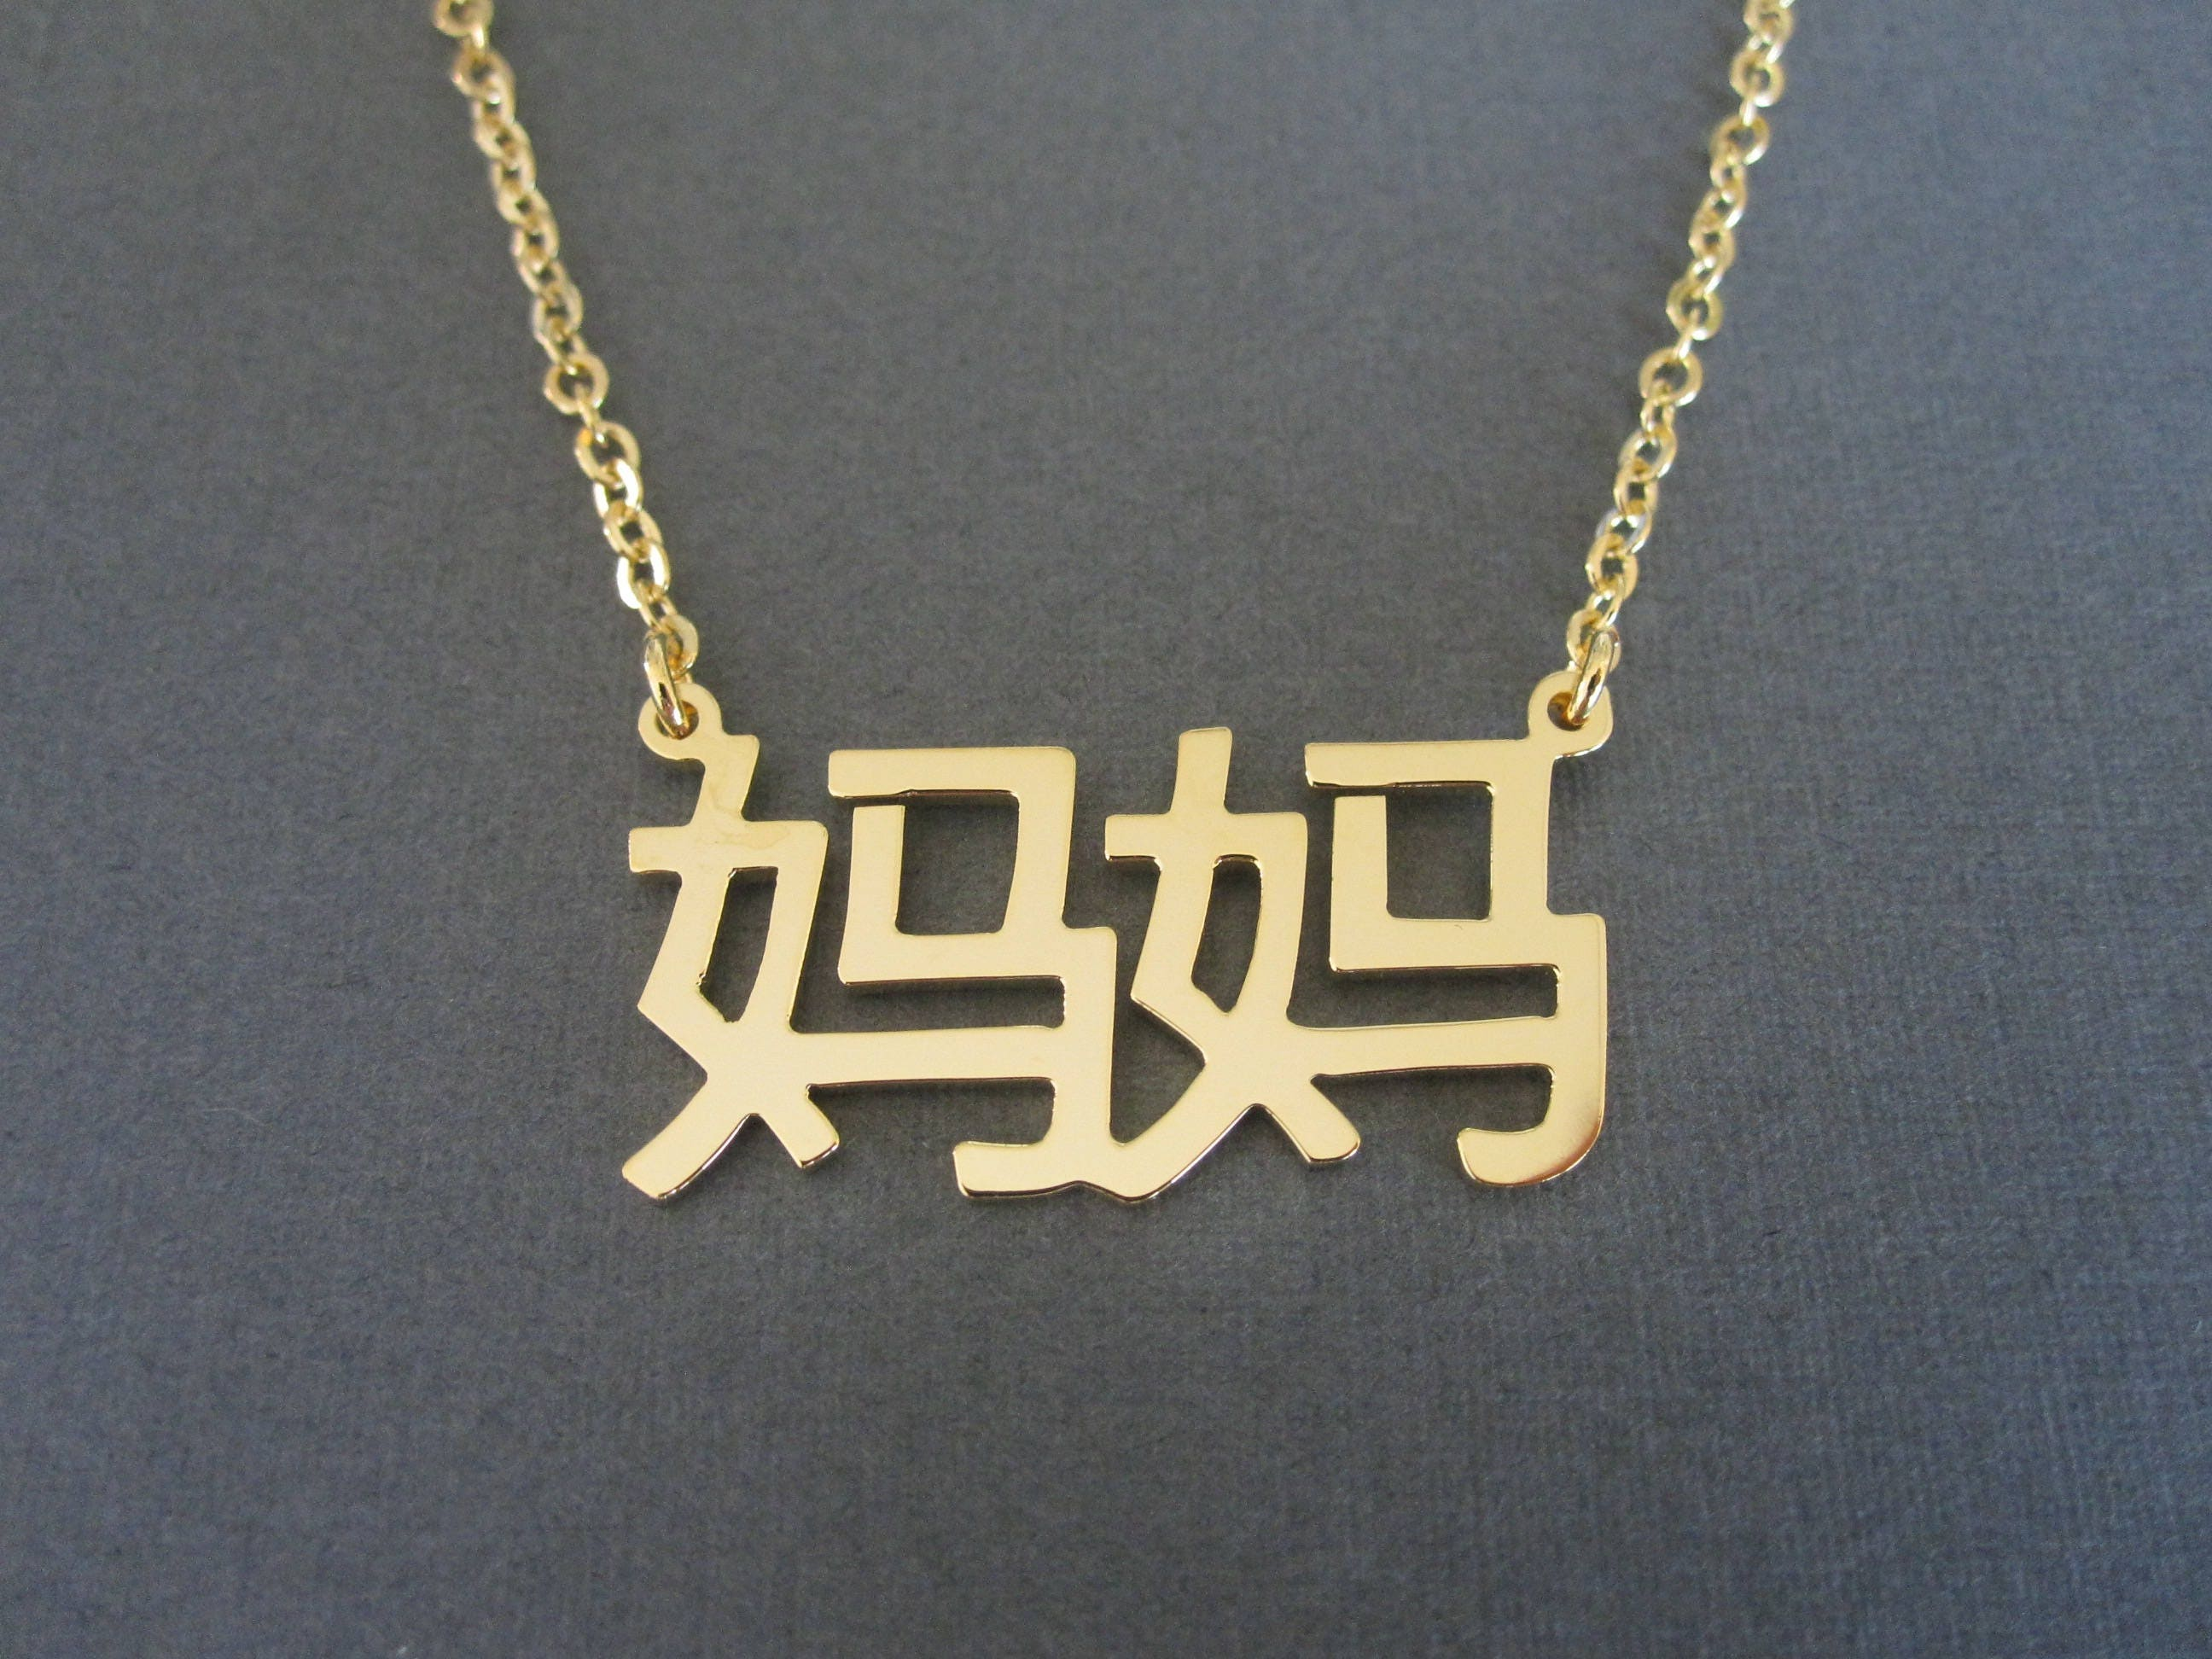 jewellery little ca dp huan amazon name necklace stainless personalized xun plated gold alyssa jewelry